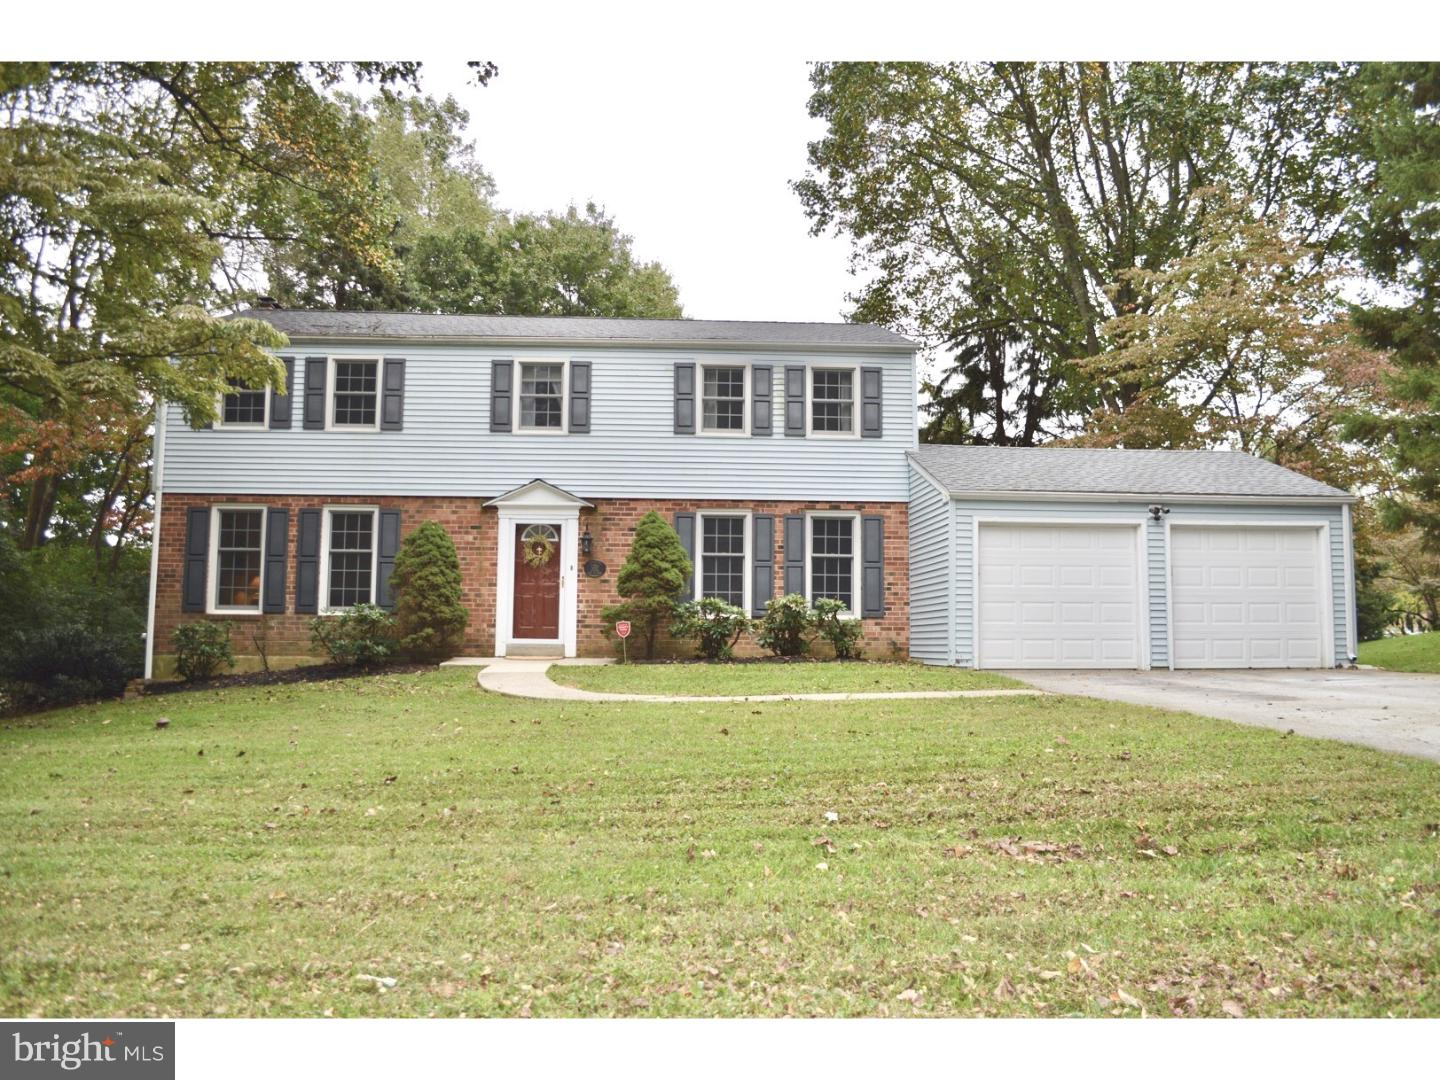 1238 Spring Valley Lane West Chester, PA 19380